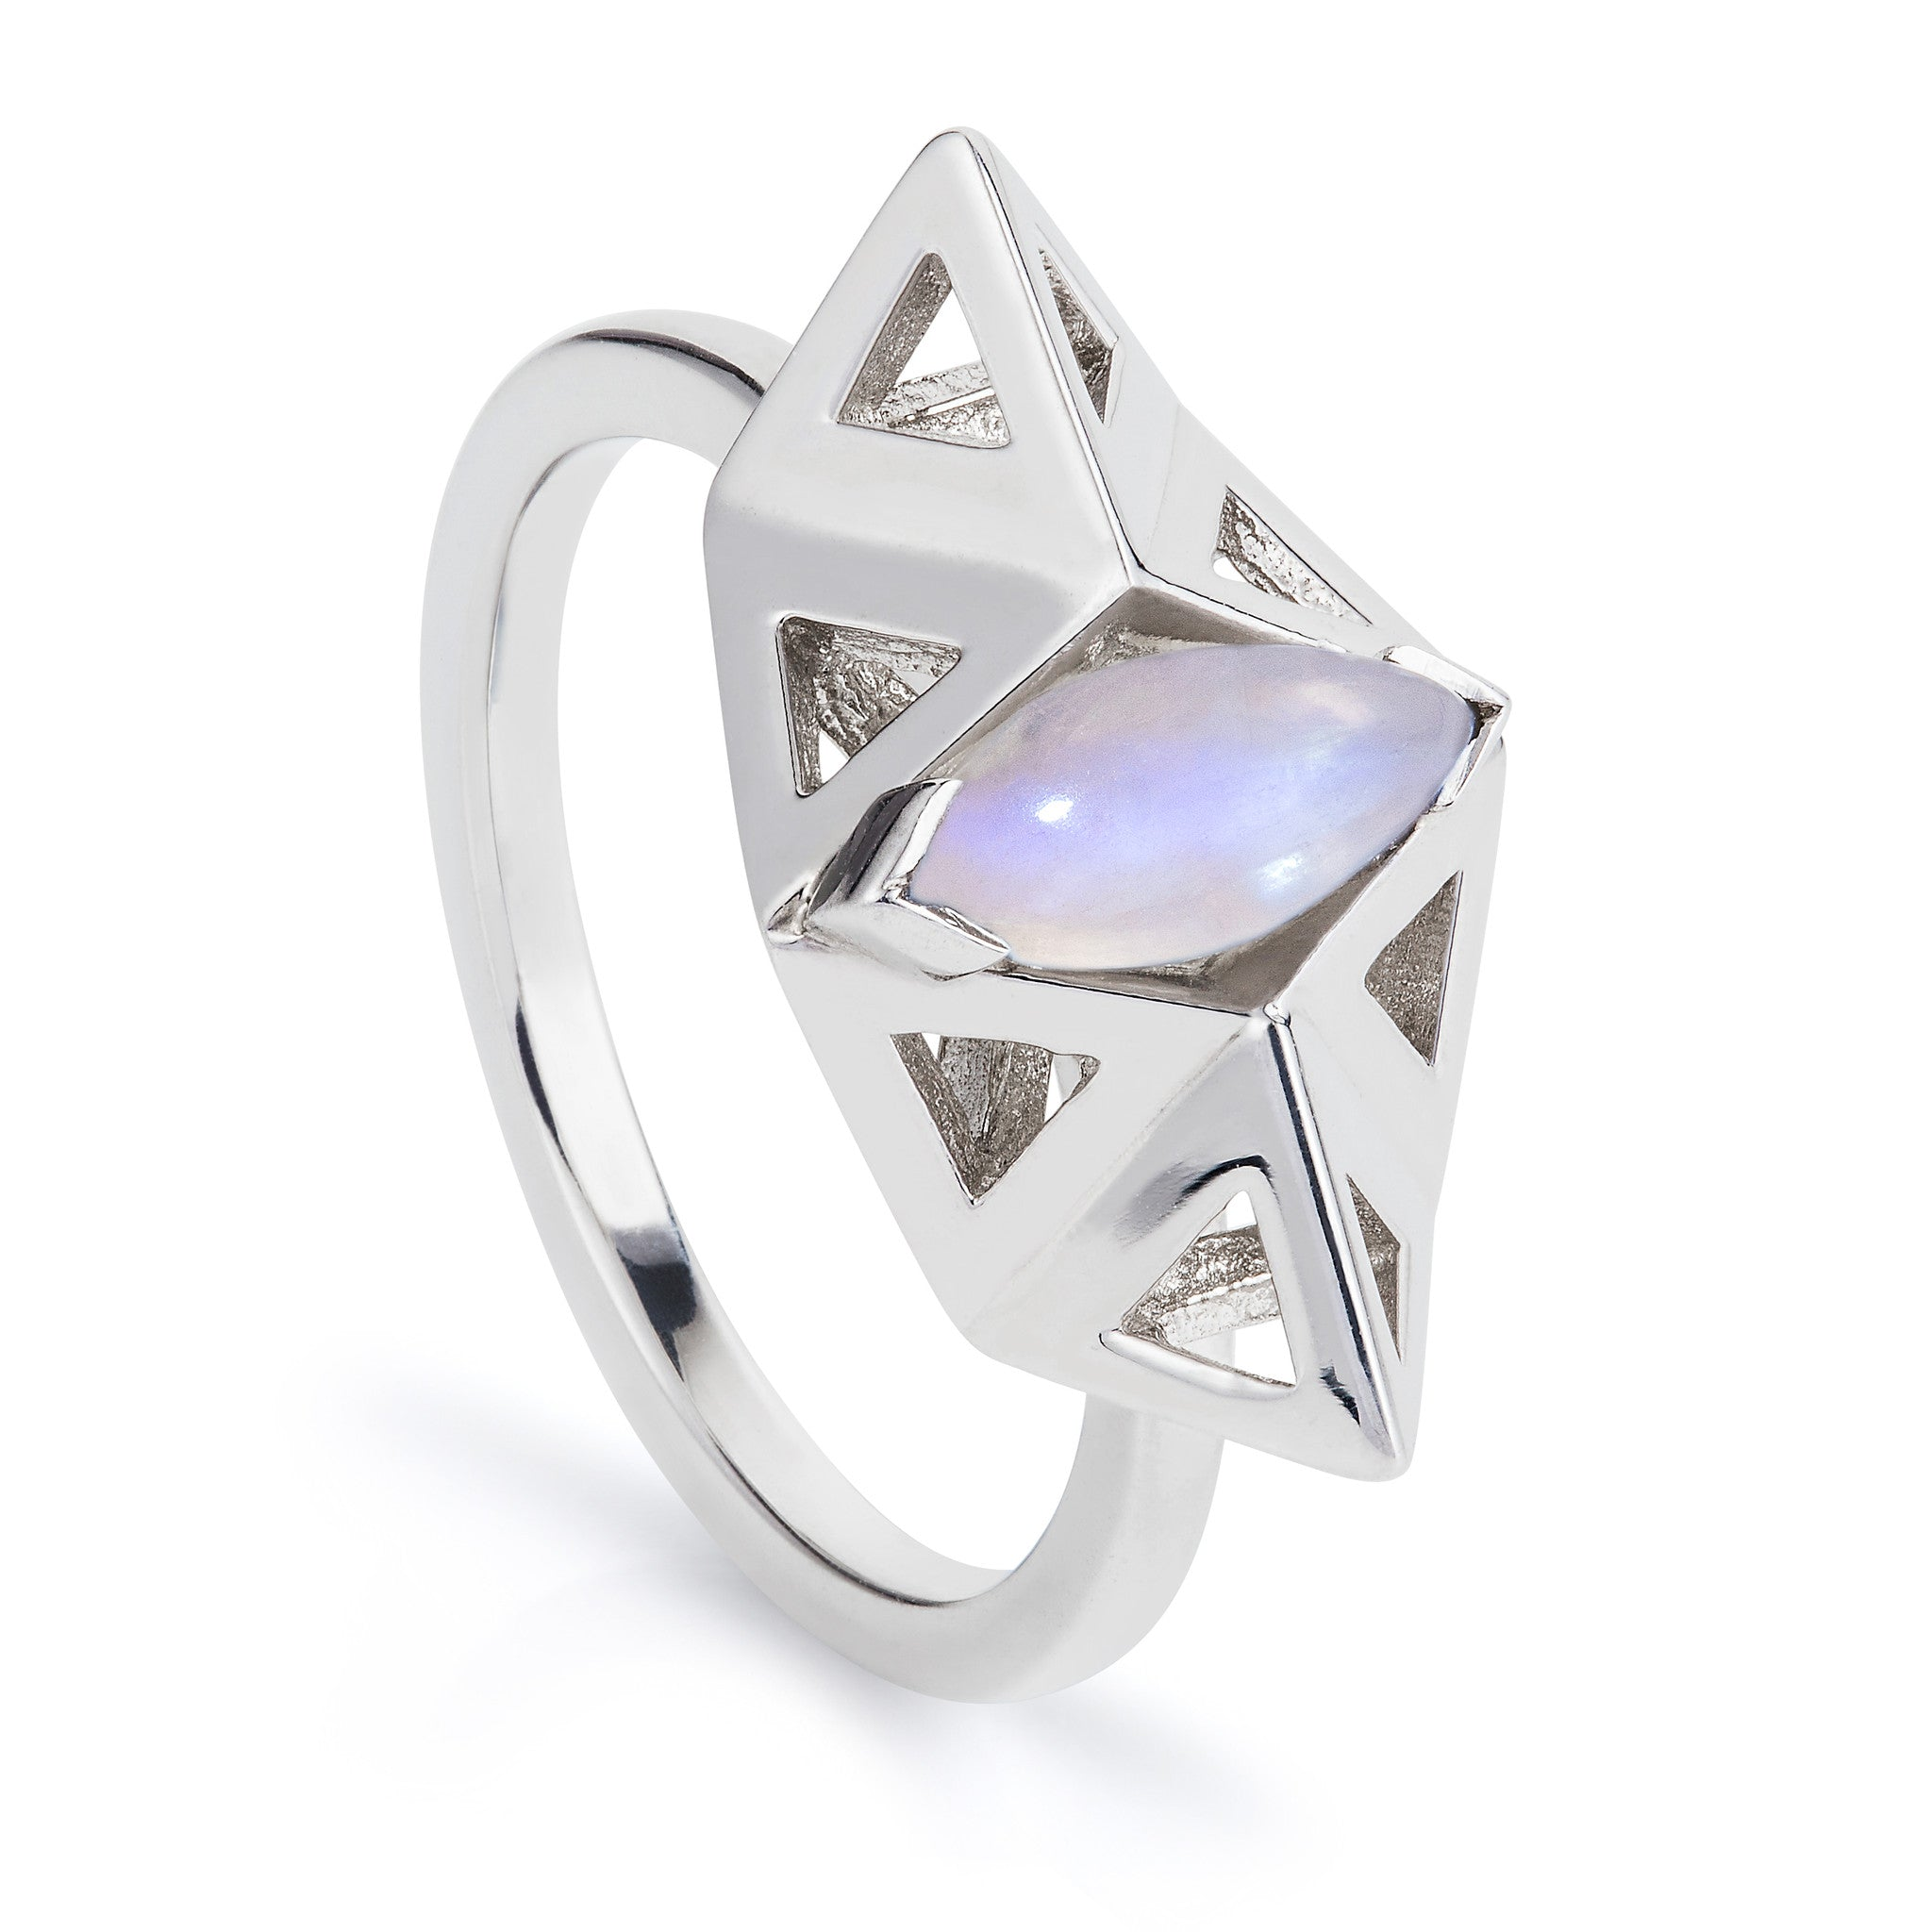 A geometric handmade ring design, made in the London Rocks workshop from sterling silver and a marquise cut moonstone to its centre